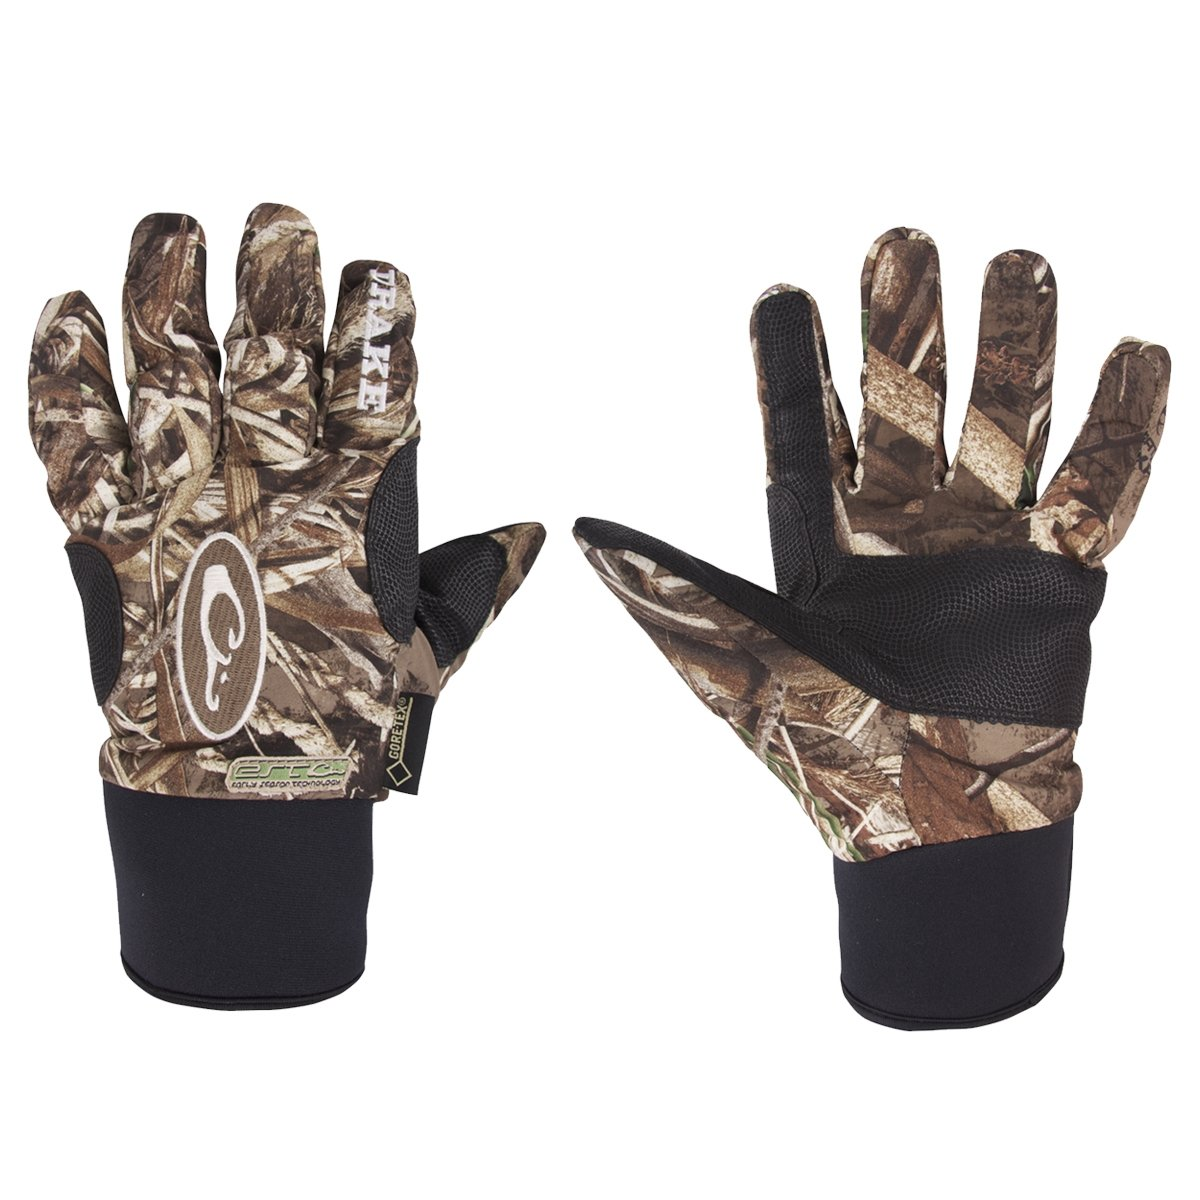 EST Refuge HS GORE-TEX Gloves Max 5 Large by Drake